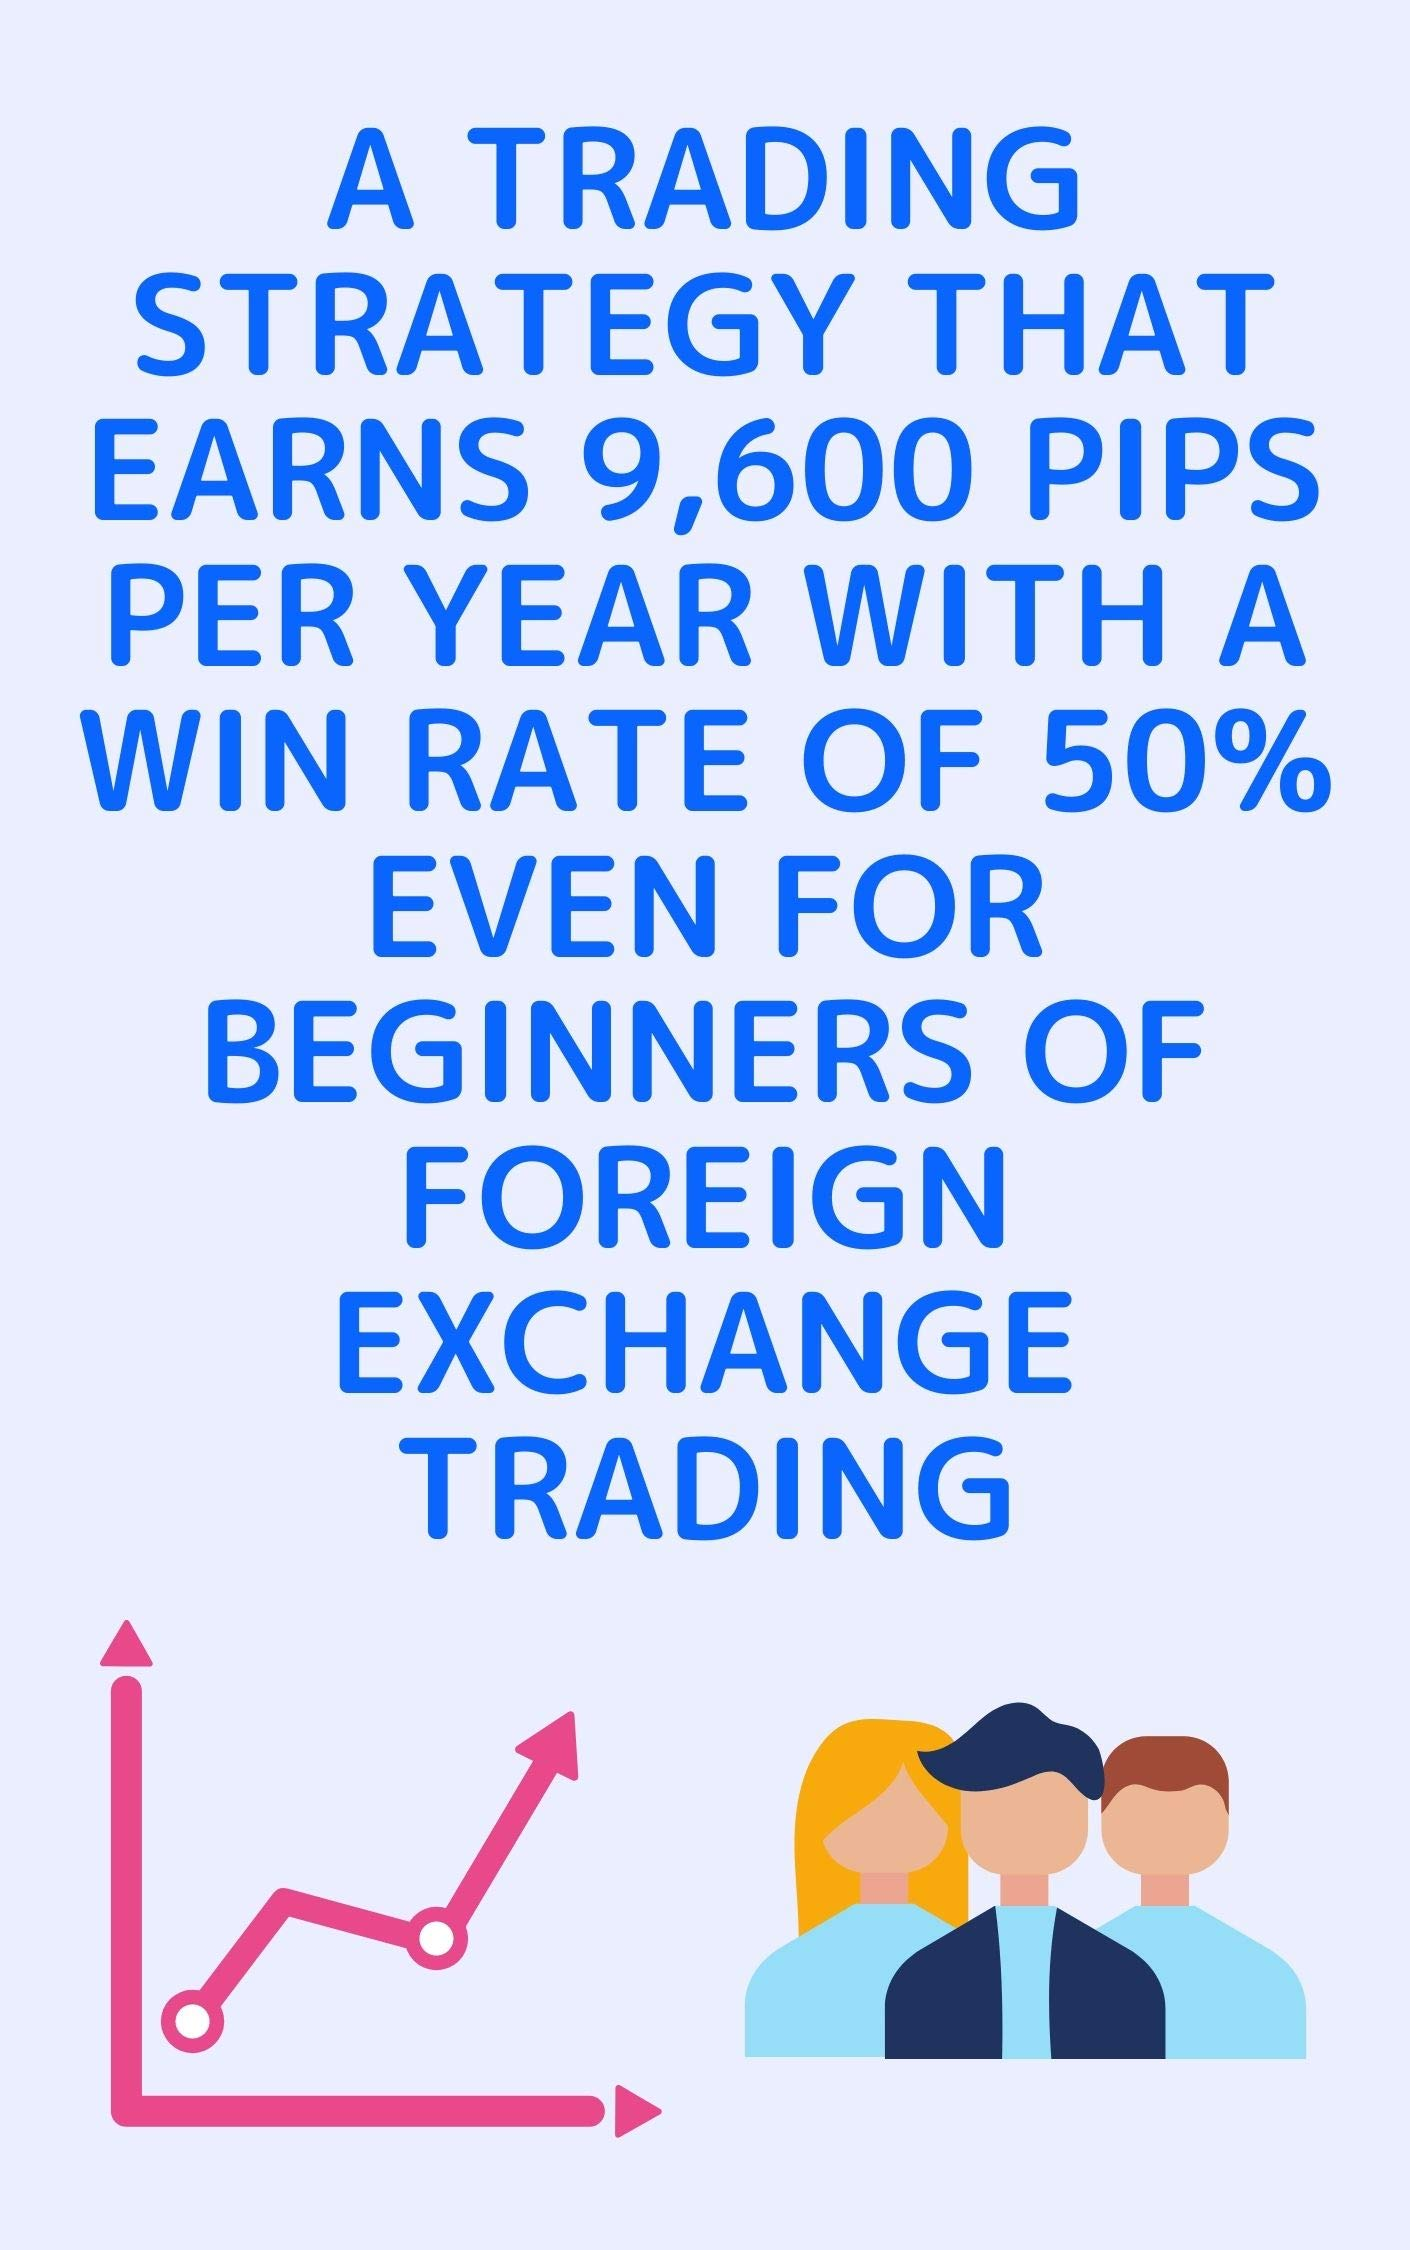 A trading strategy that earns 9,600 pips per year with a win rate of 50% even for beginners of foreign exchange trading